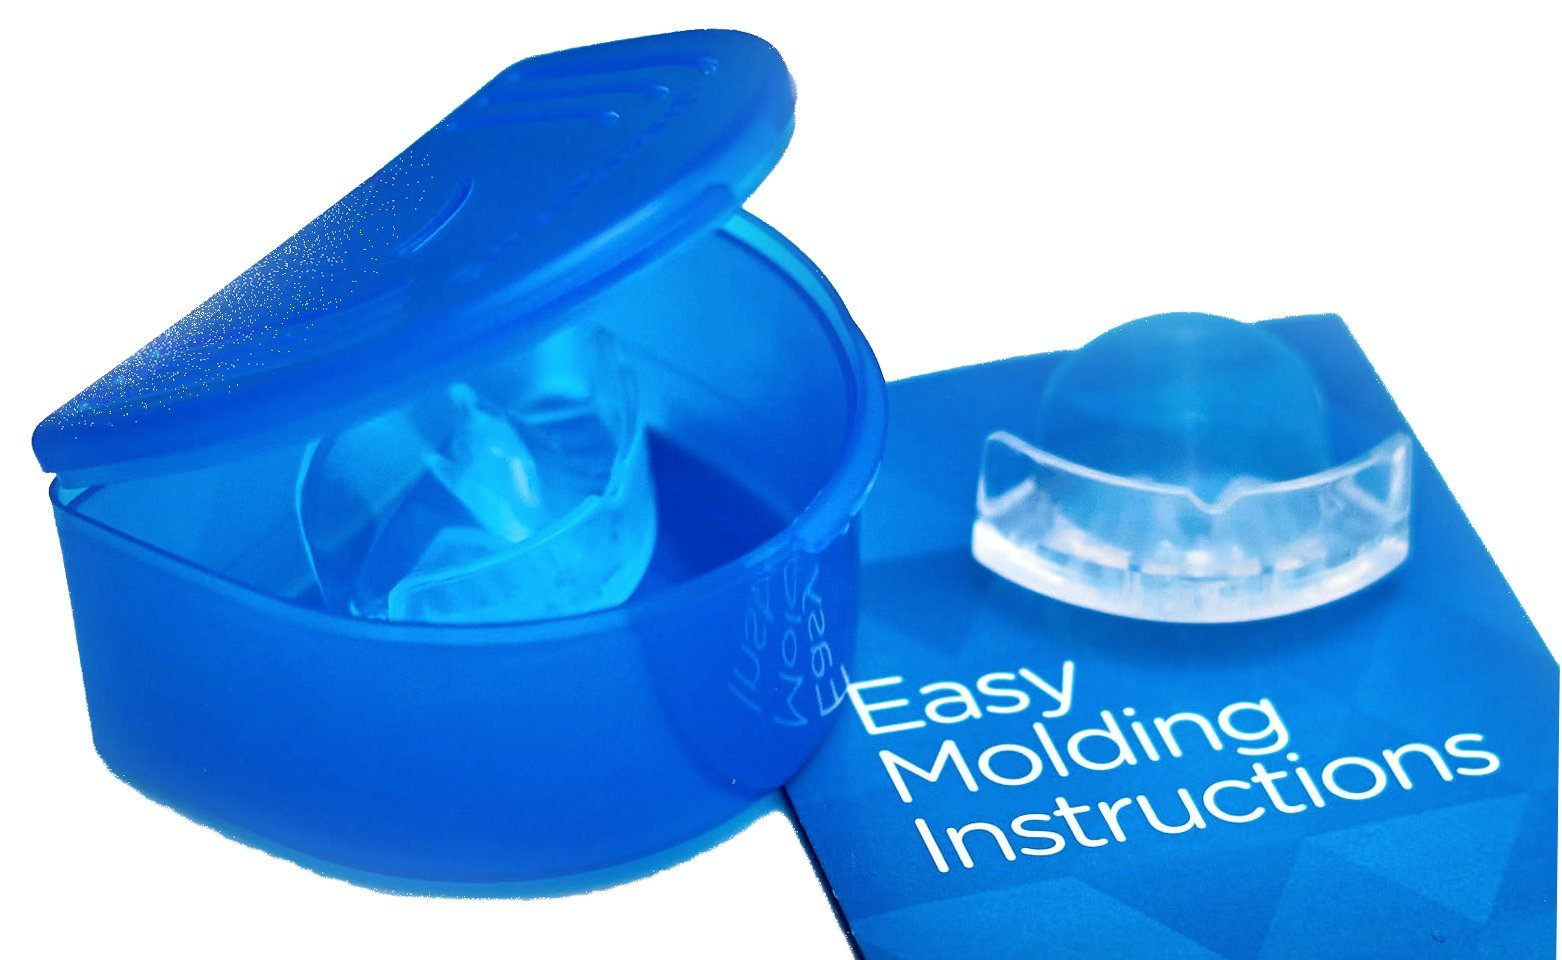 SMARTGUARD ELITE (2 Guards 1 Travel case) Dental Guard Custom Teeth Grinding Night Guard for Clenching - TMJ Dentist Designed - Bruxing Splint Mouth Protector For Relief of Symptoms